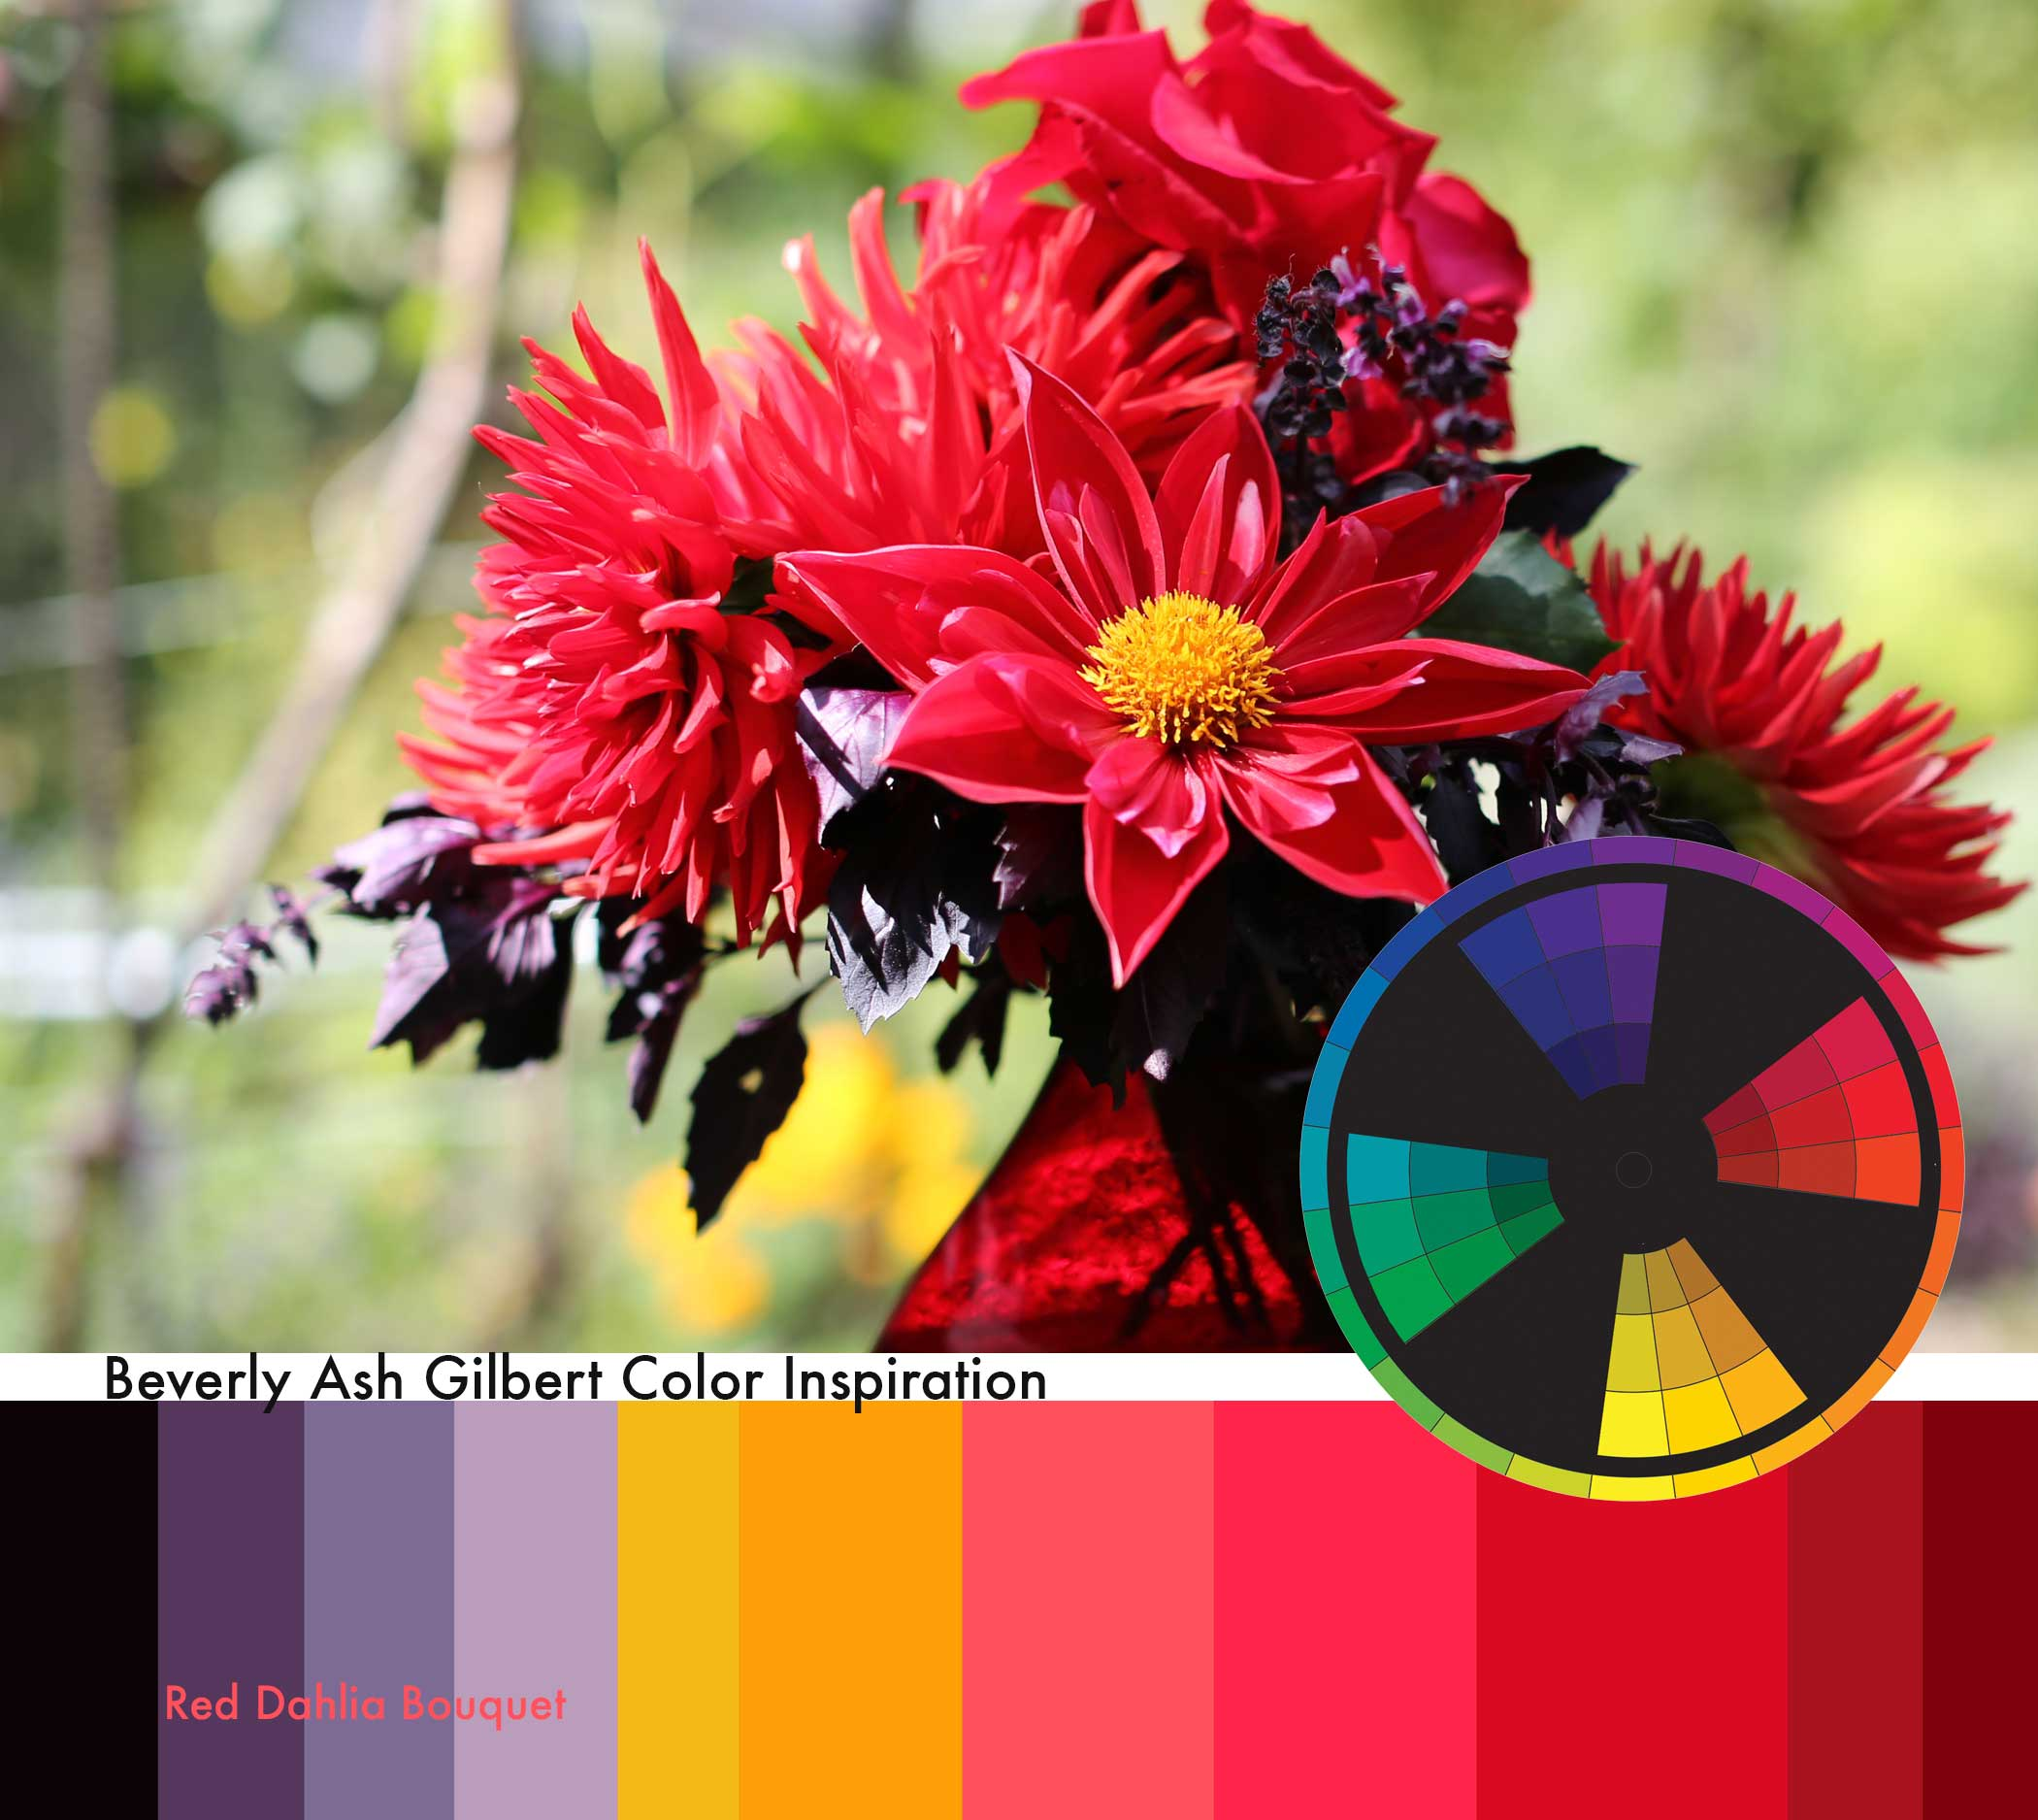 ColorInspiration_RedDahliaBouquet_small.jpg